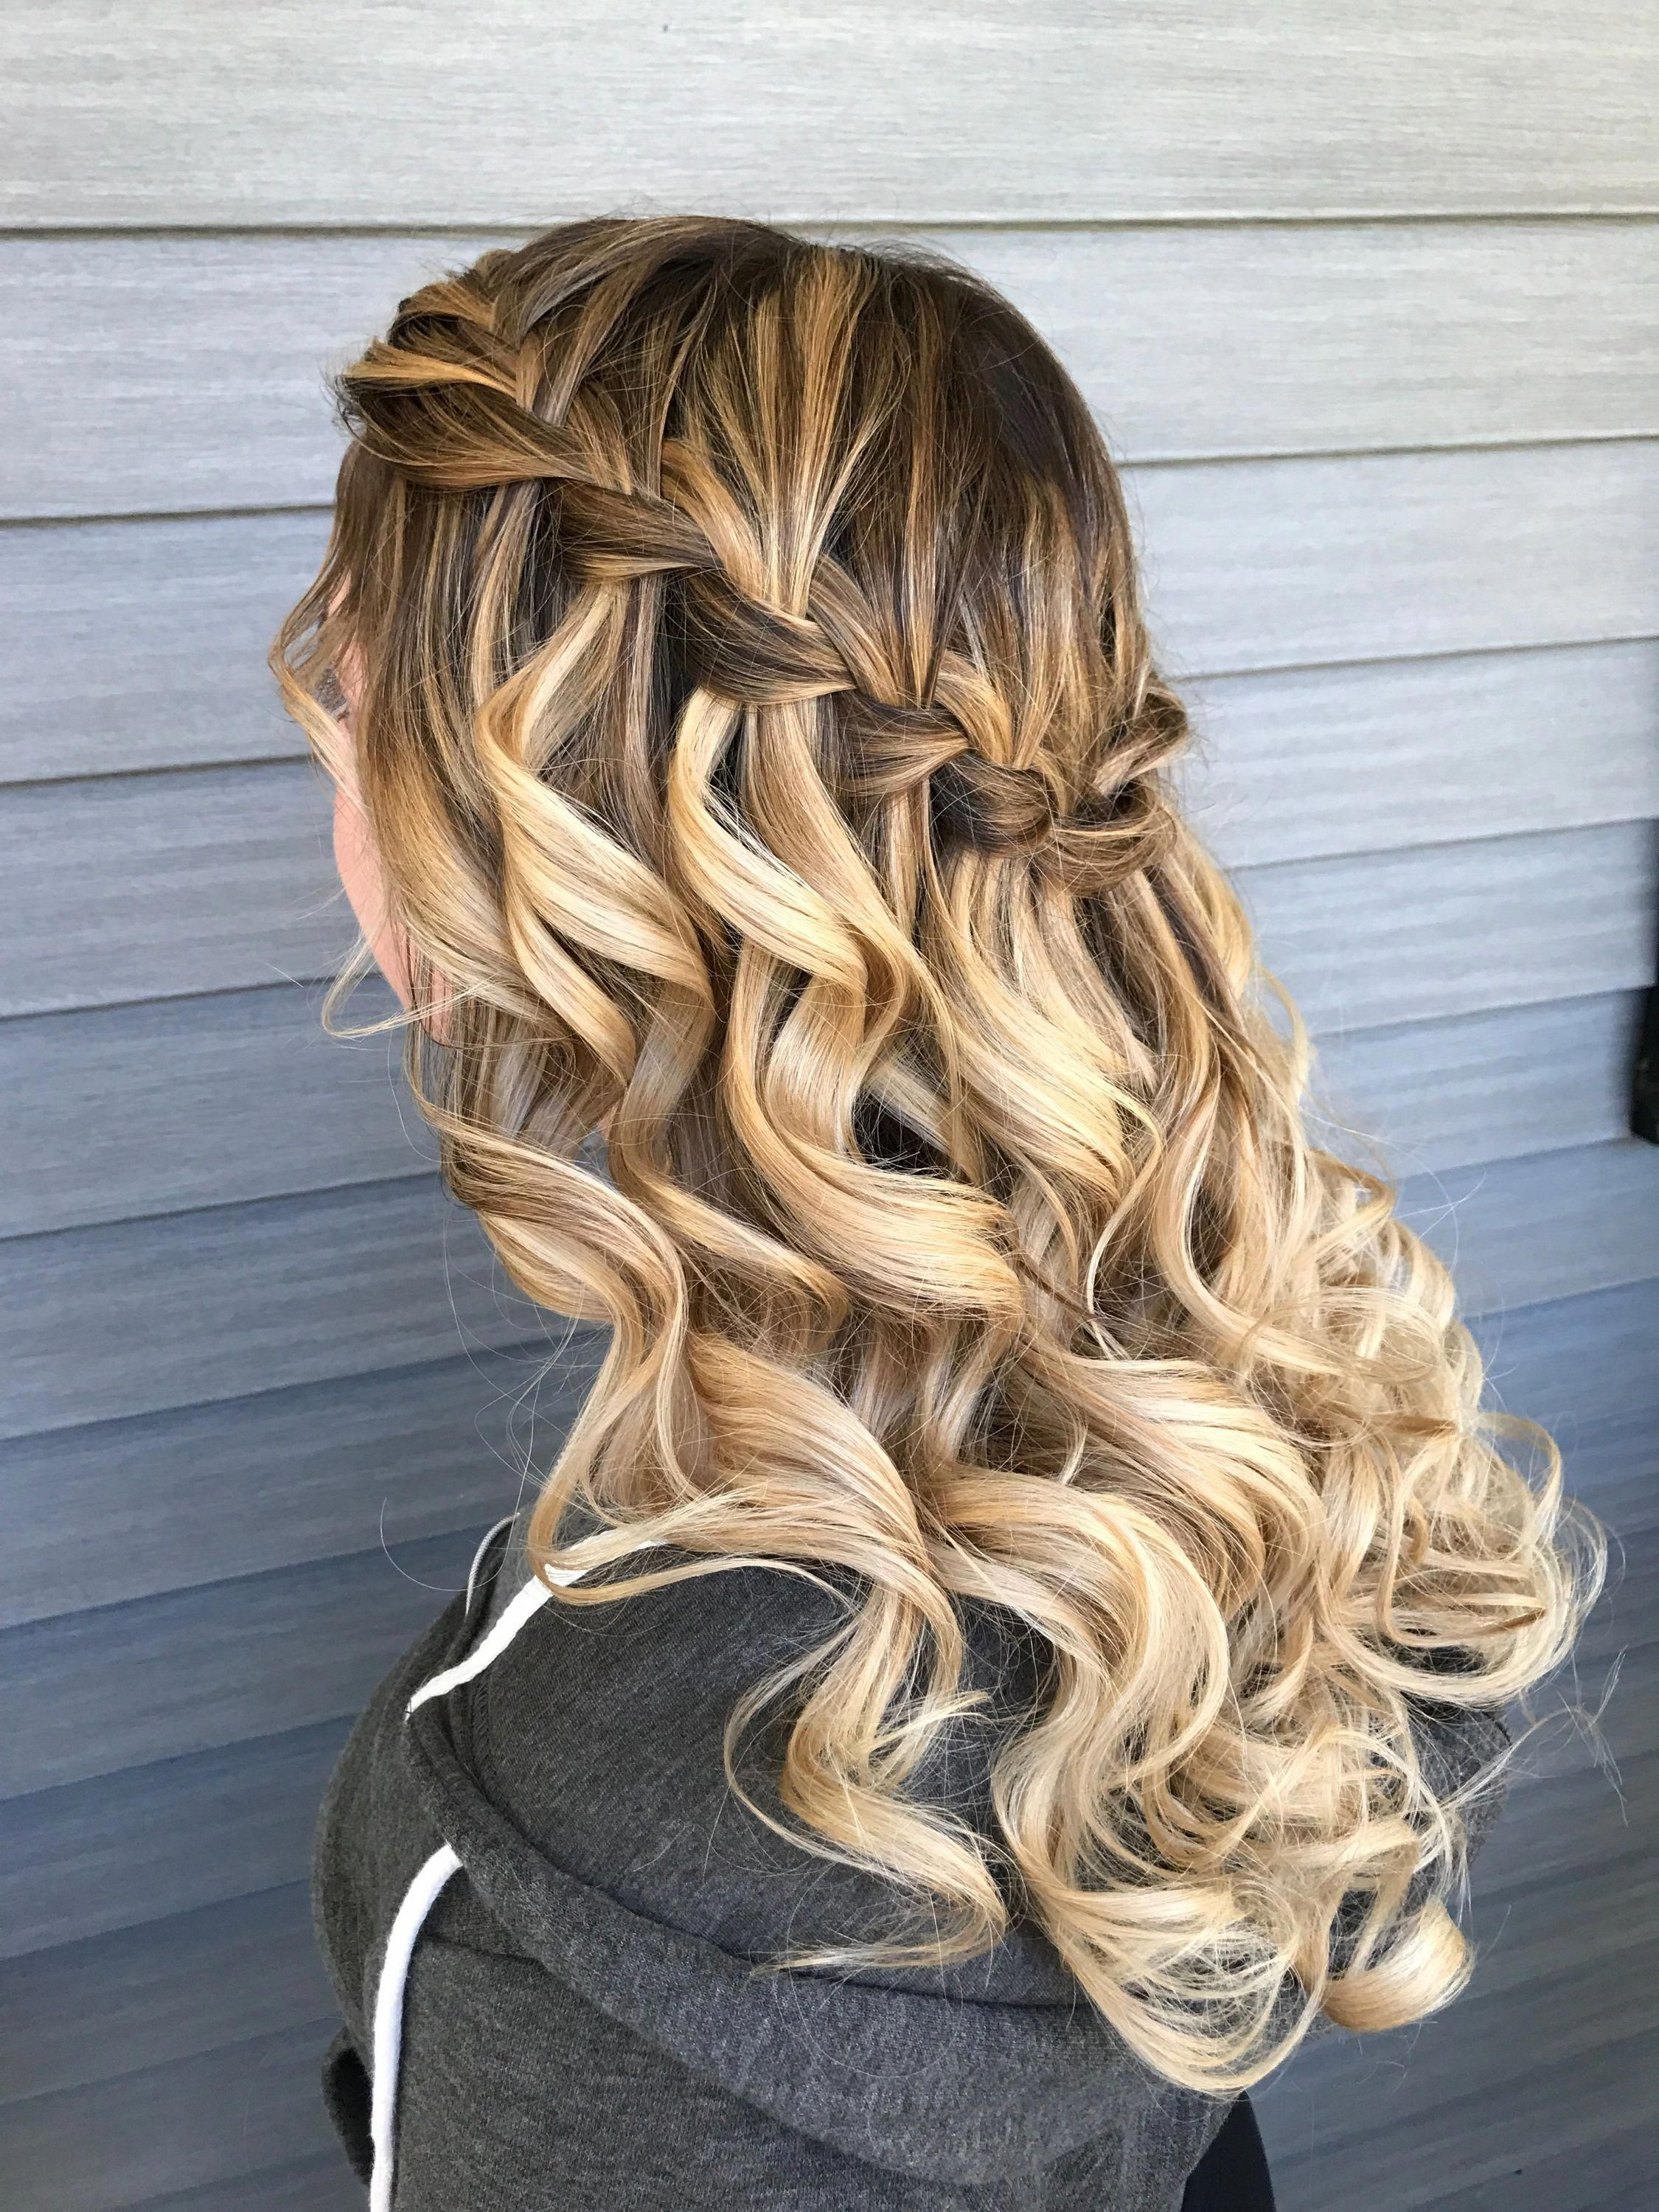 My prom hair done by Rachelle Araujo #PromHairstyle | Long ...